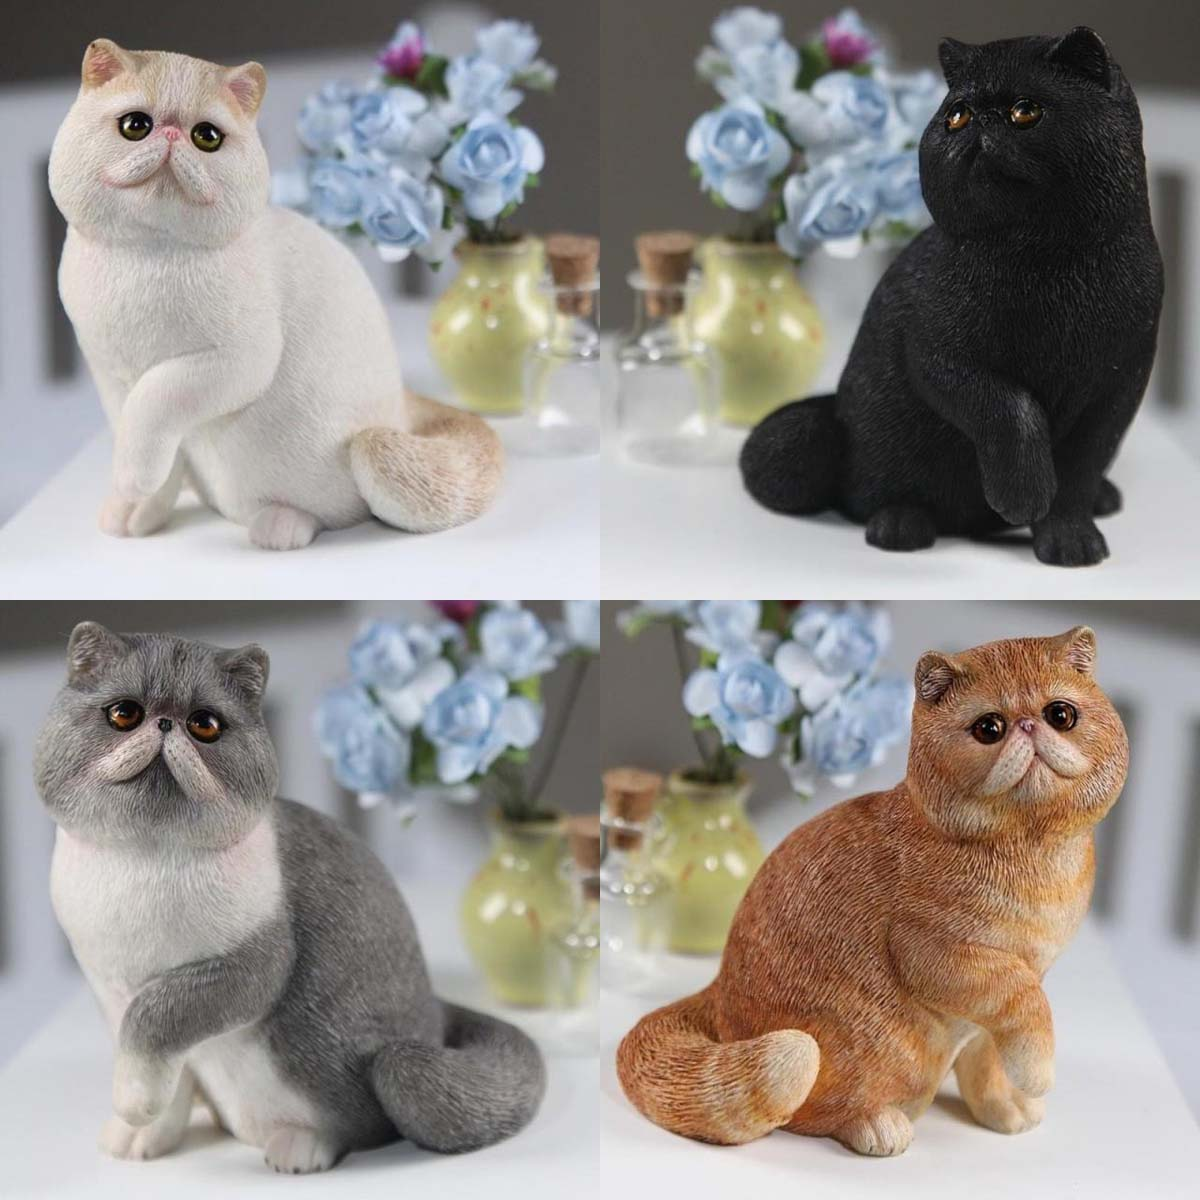 Mnotht Real Animal Series No.8 1/6TH Scale Exotic Shorthair Cat (Garfield) Statue 4 Colors Collections For 12in Action Figures corporate real estate management in tanzania